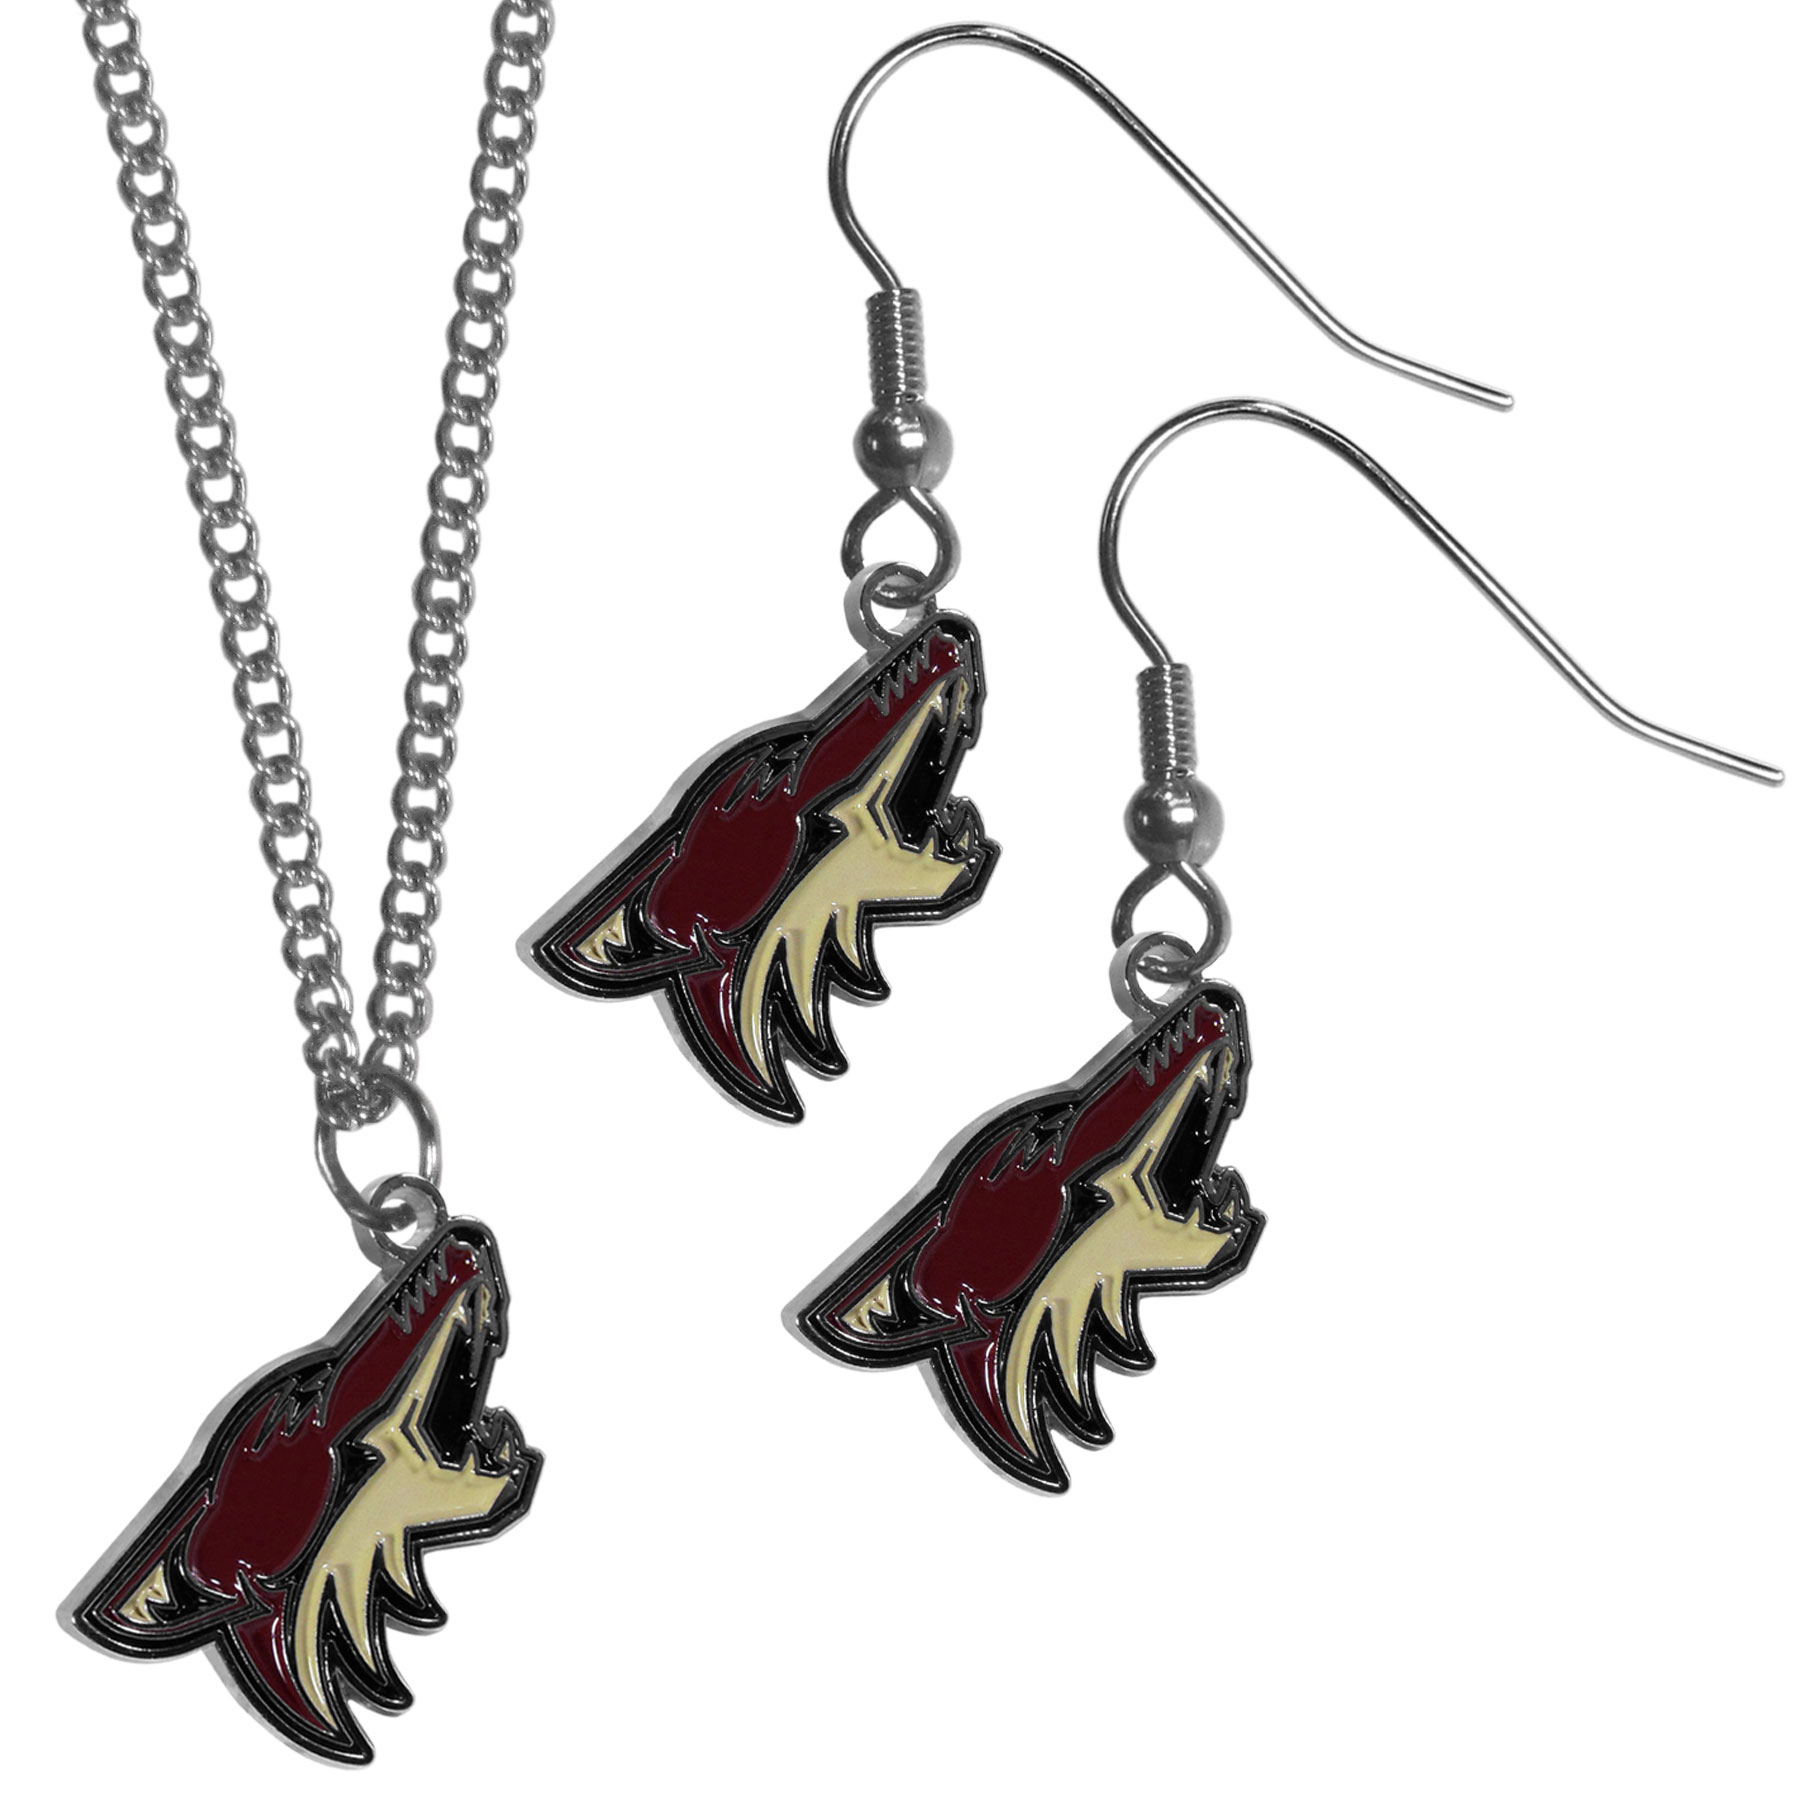 Arizona Coyotes® Dangle Earrings and Chain Necklace Set - This classic jewelry set contains are most popular Arizona Coyotes® dangle earrings and 22 inch chain necklace. The trendy, dangle earrings are lightweight and feature a fully cast metal team charm with enameled team colors. The matching necklace completes this fashion forward combo and is a spirited set that is perfect for game day but nice enough for everyday.